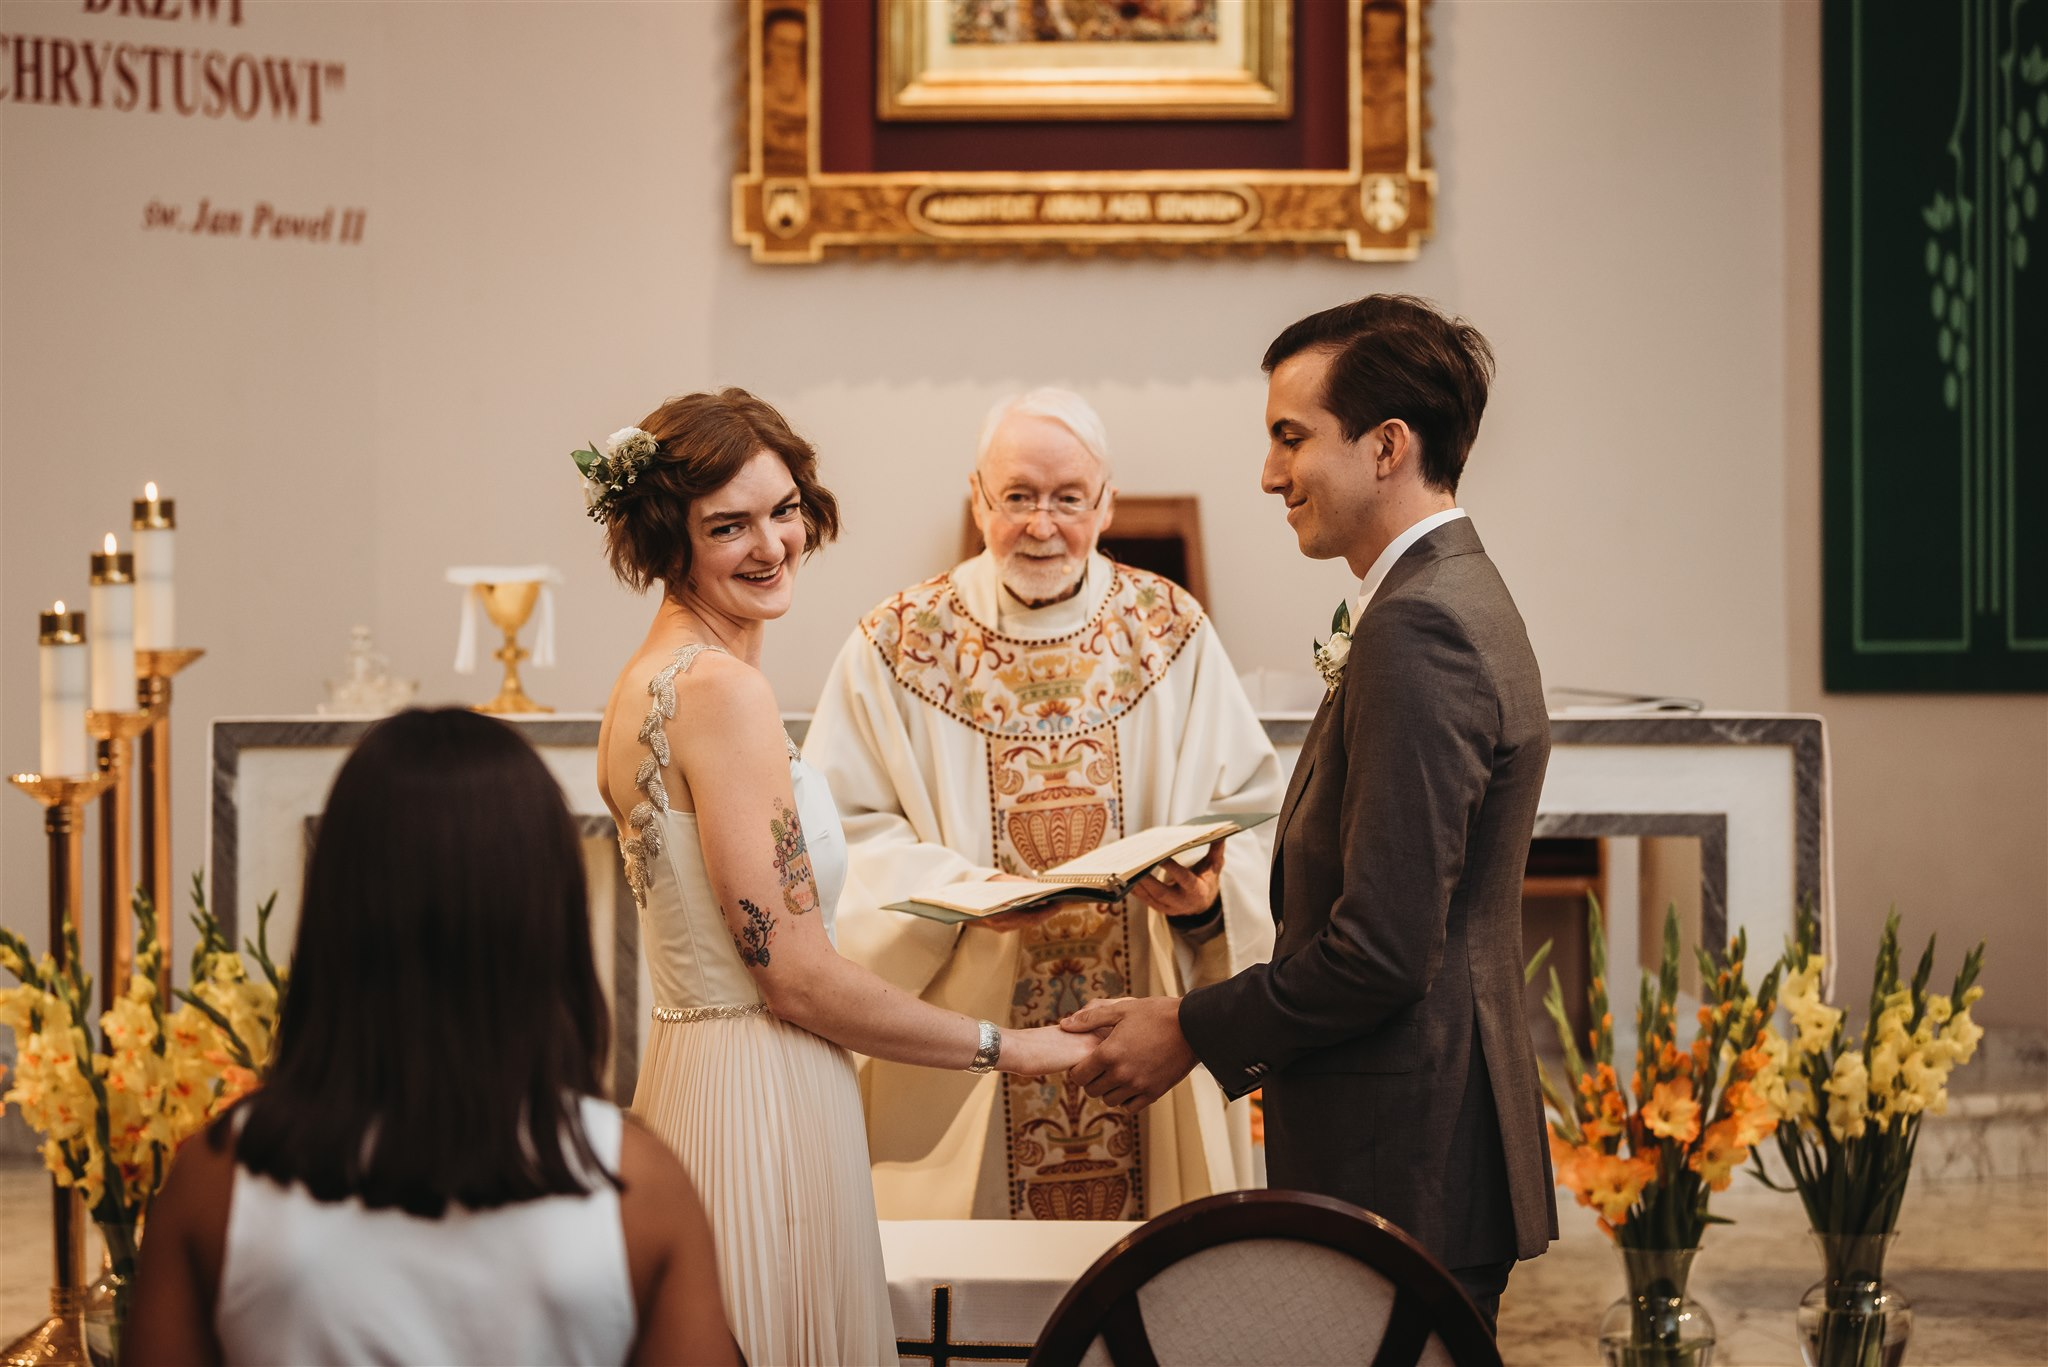 wedding ceremony at our lady of czestochowa polish catholic church in london ontario, captured by london wedding photographer Chelsey of Ten2Ten Photography